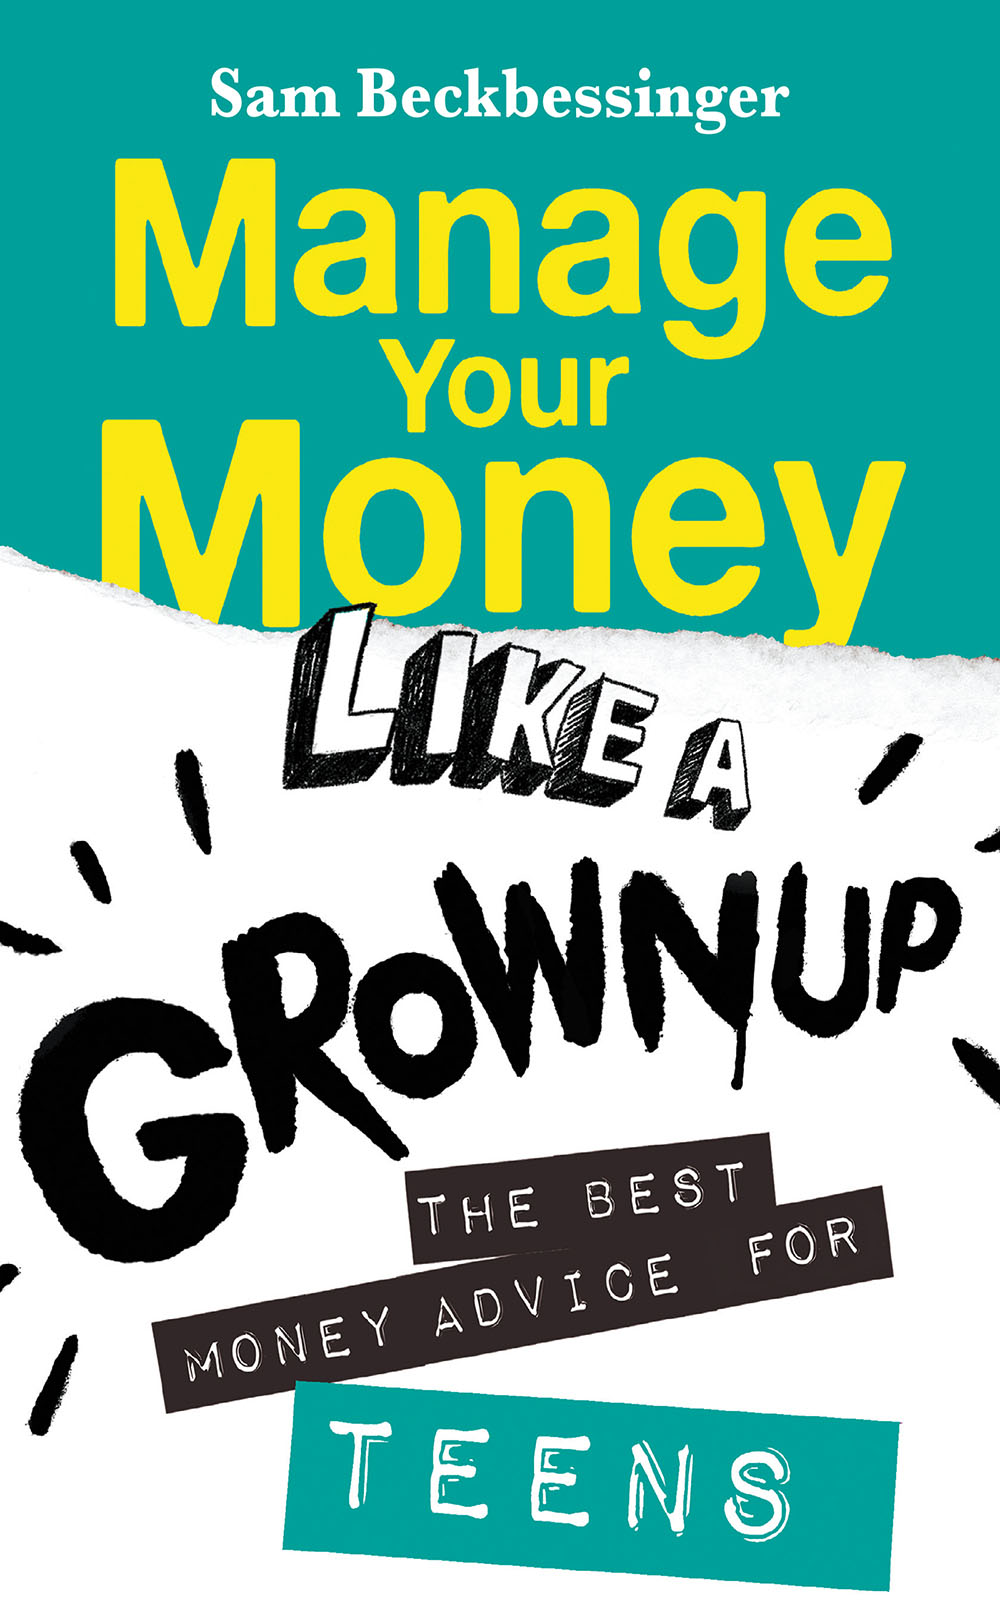 Manage Your Money Like a Grownup The best money advice for teens